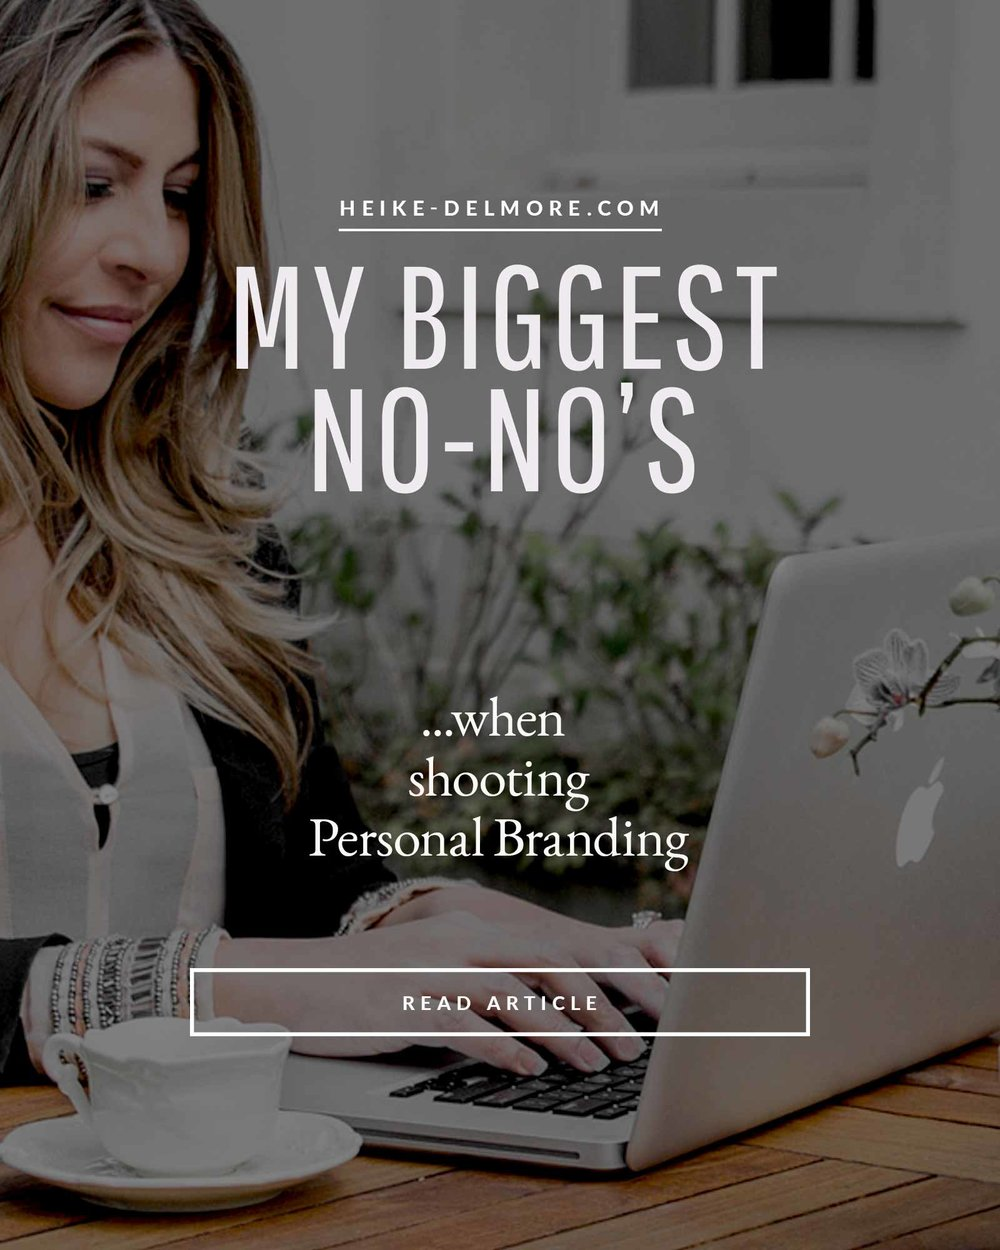 Biggest No-No's when photographing Personal Branding